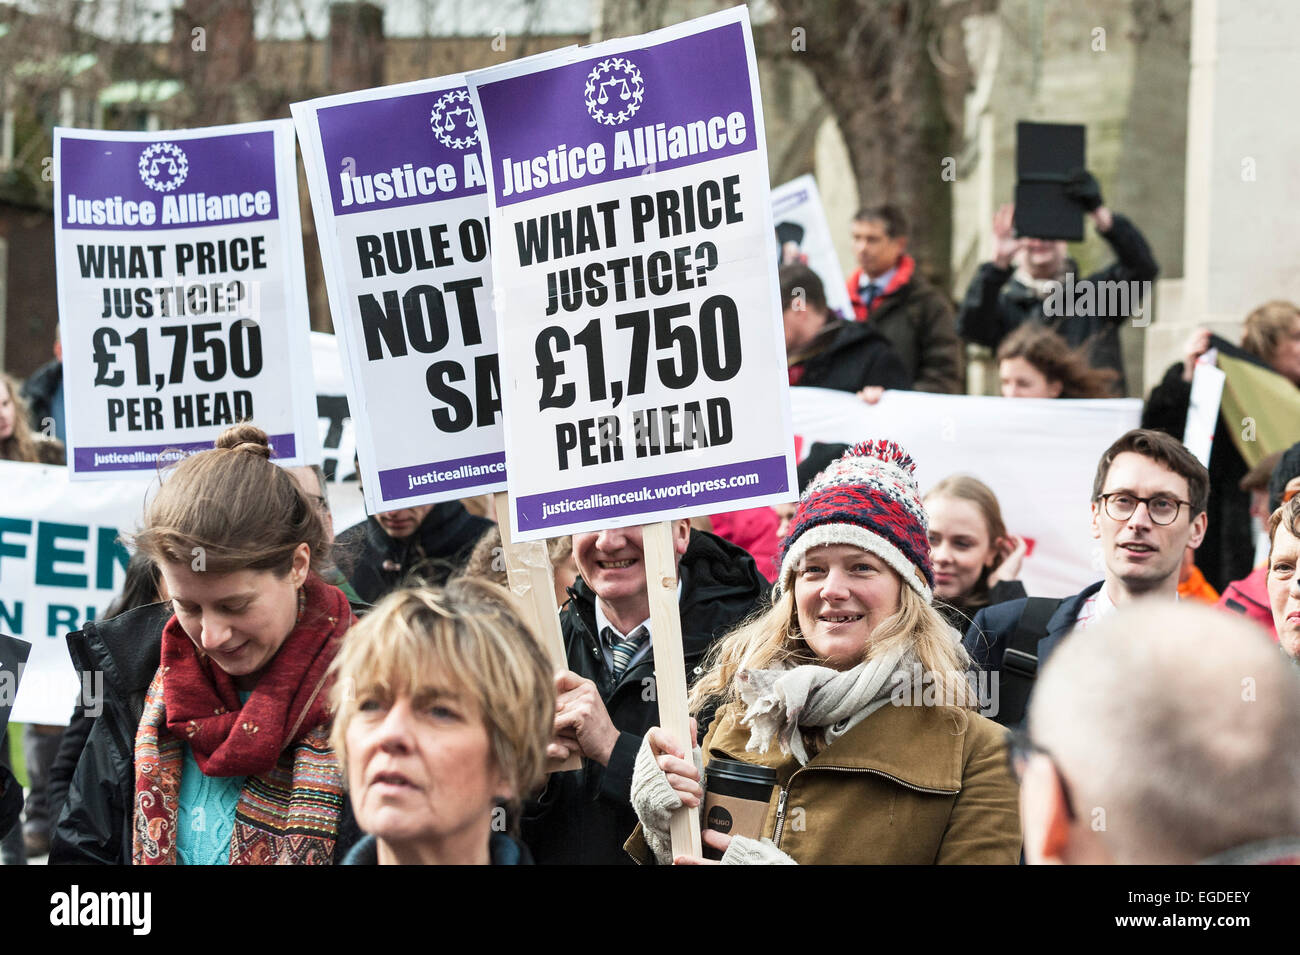 Westminster, London, UK. 23rd February, 2015. Hundreds of lawyers, trade unionists and campaigners gathered outside - Stock Image